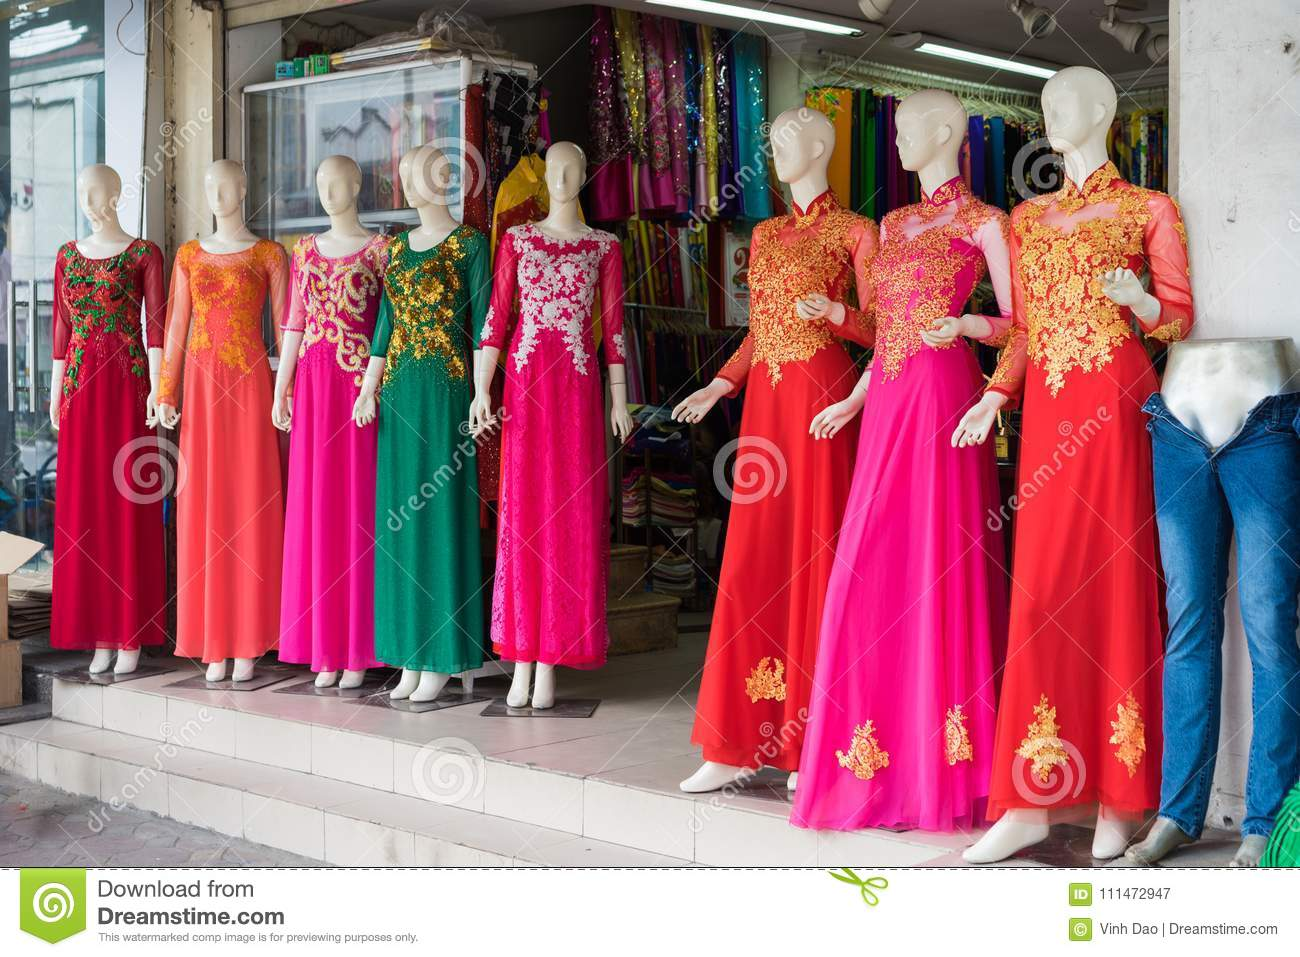 1ac03dd37 Hanoi, Vietnam - Apr 28, 2015: Vietnamese traditional dress Ao Dai for sale  in a shop in Xuan Thuy street.